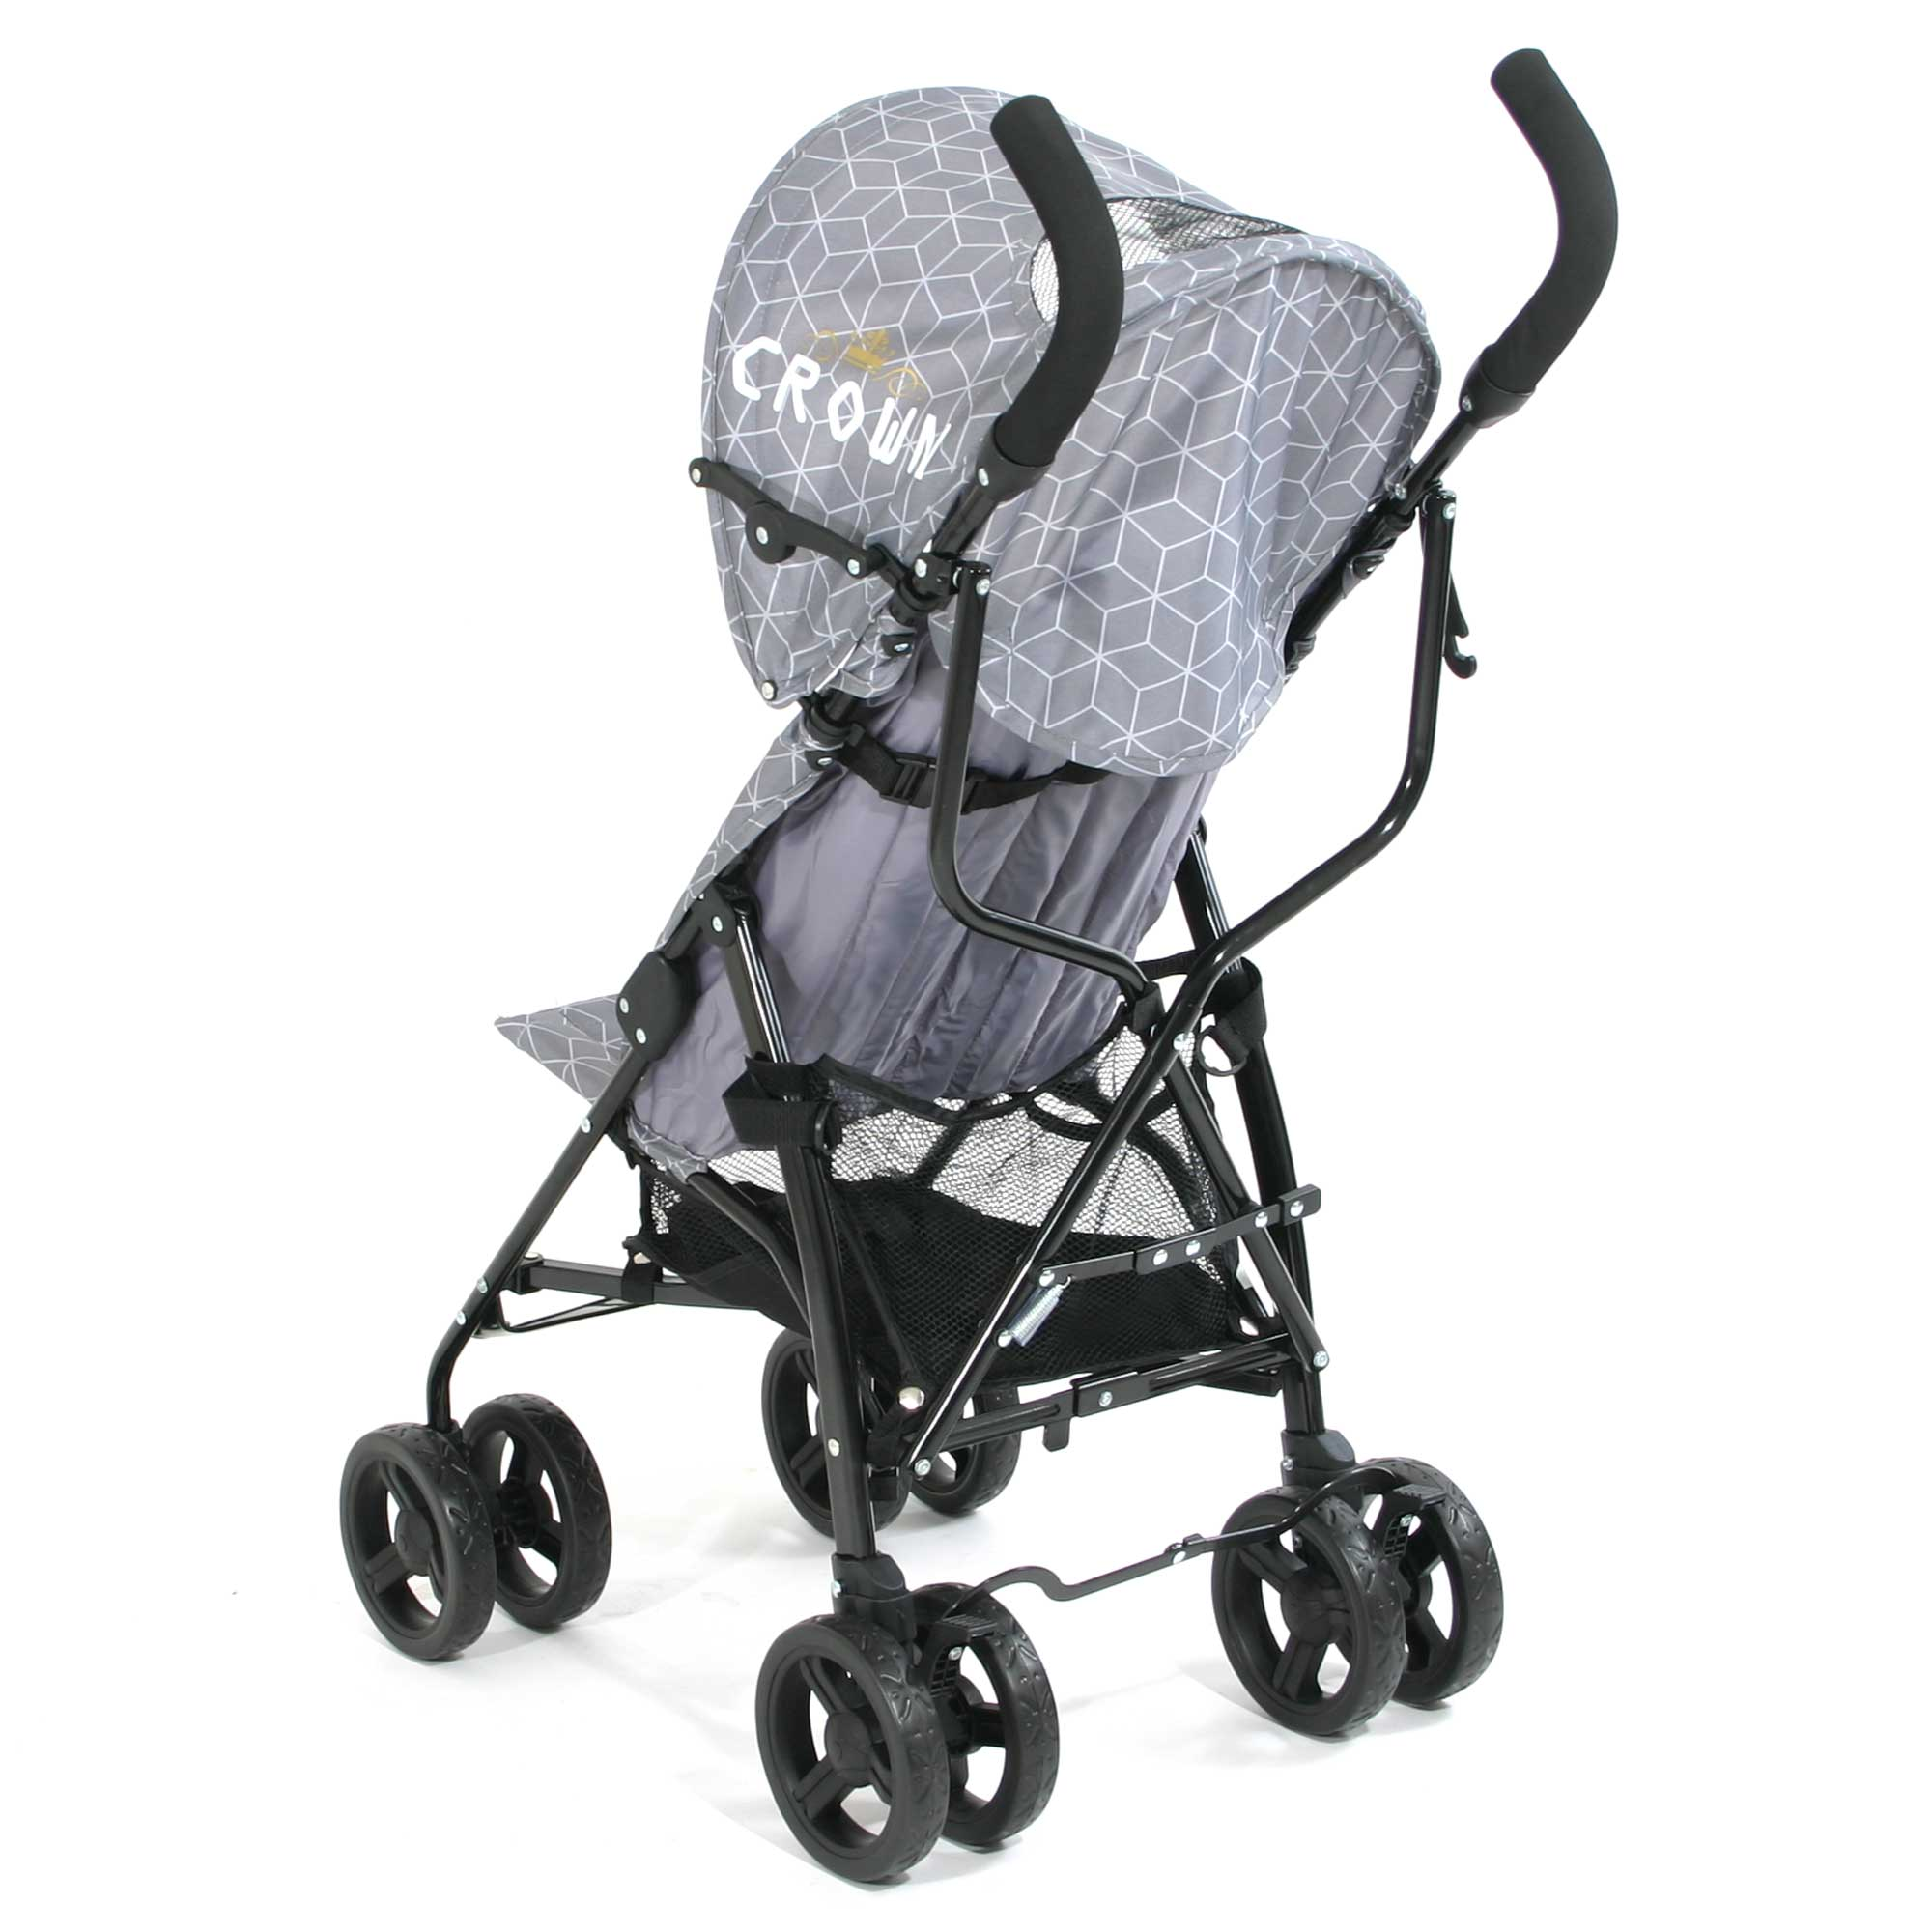 Crown_Kinderwagen_St120_grey_02.jpg